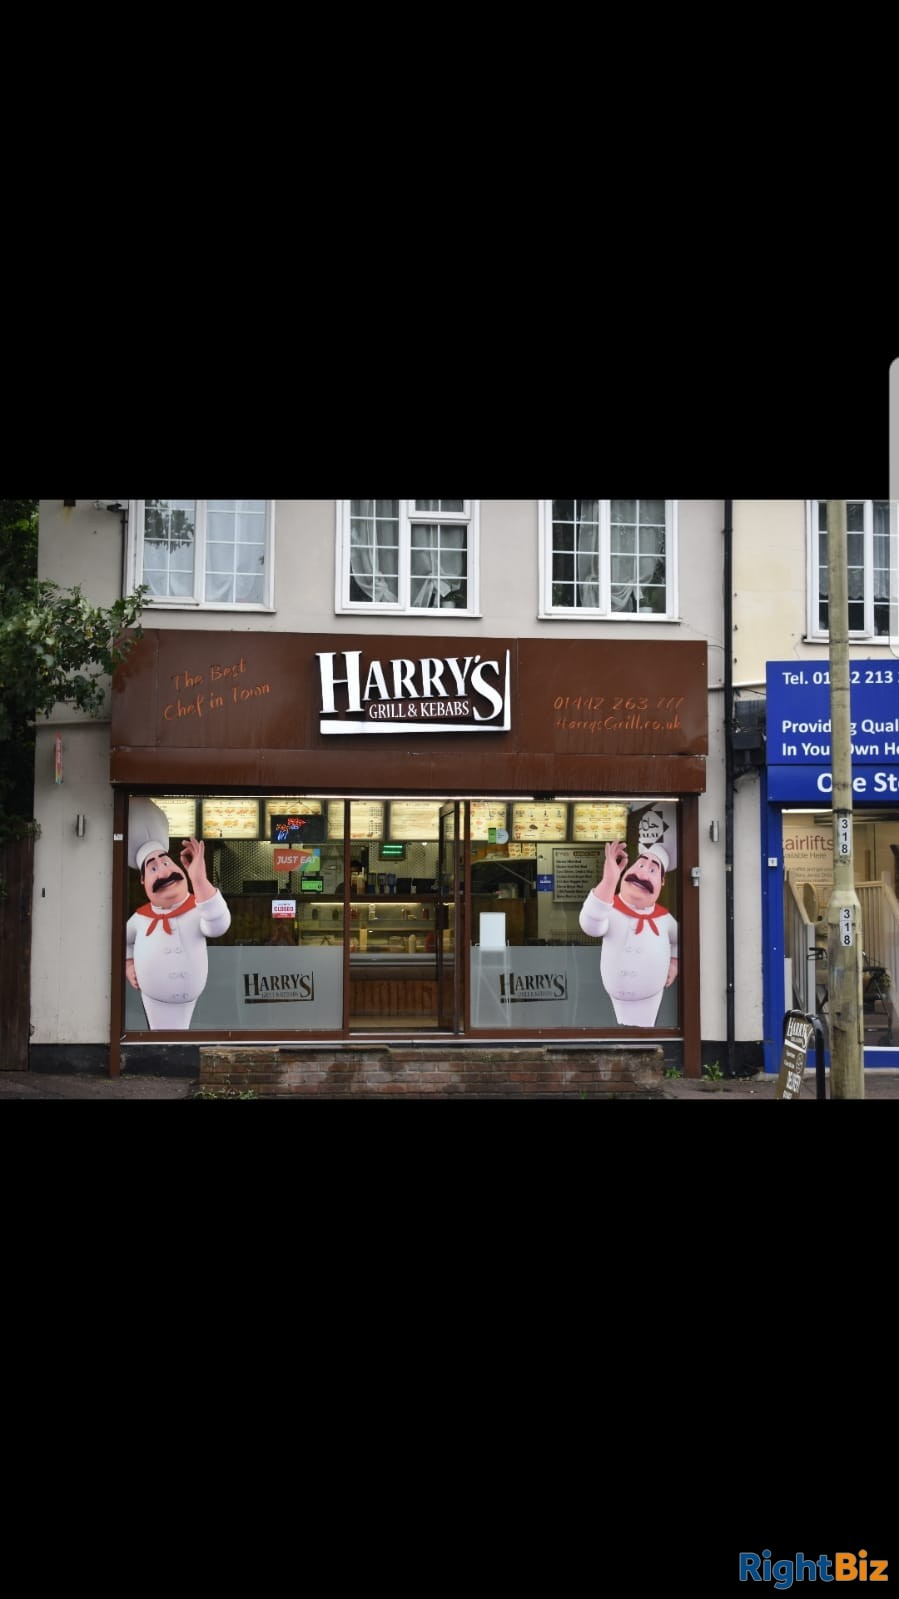 Harry's grill & kebabs. Well established since 2012. Selling kebabs, burgers, fried chicken. - Image 1